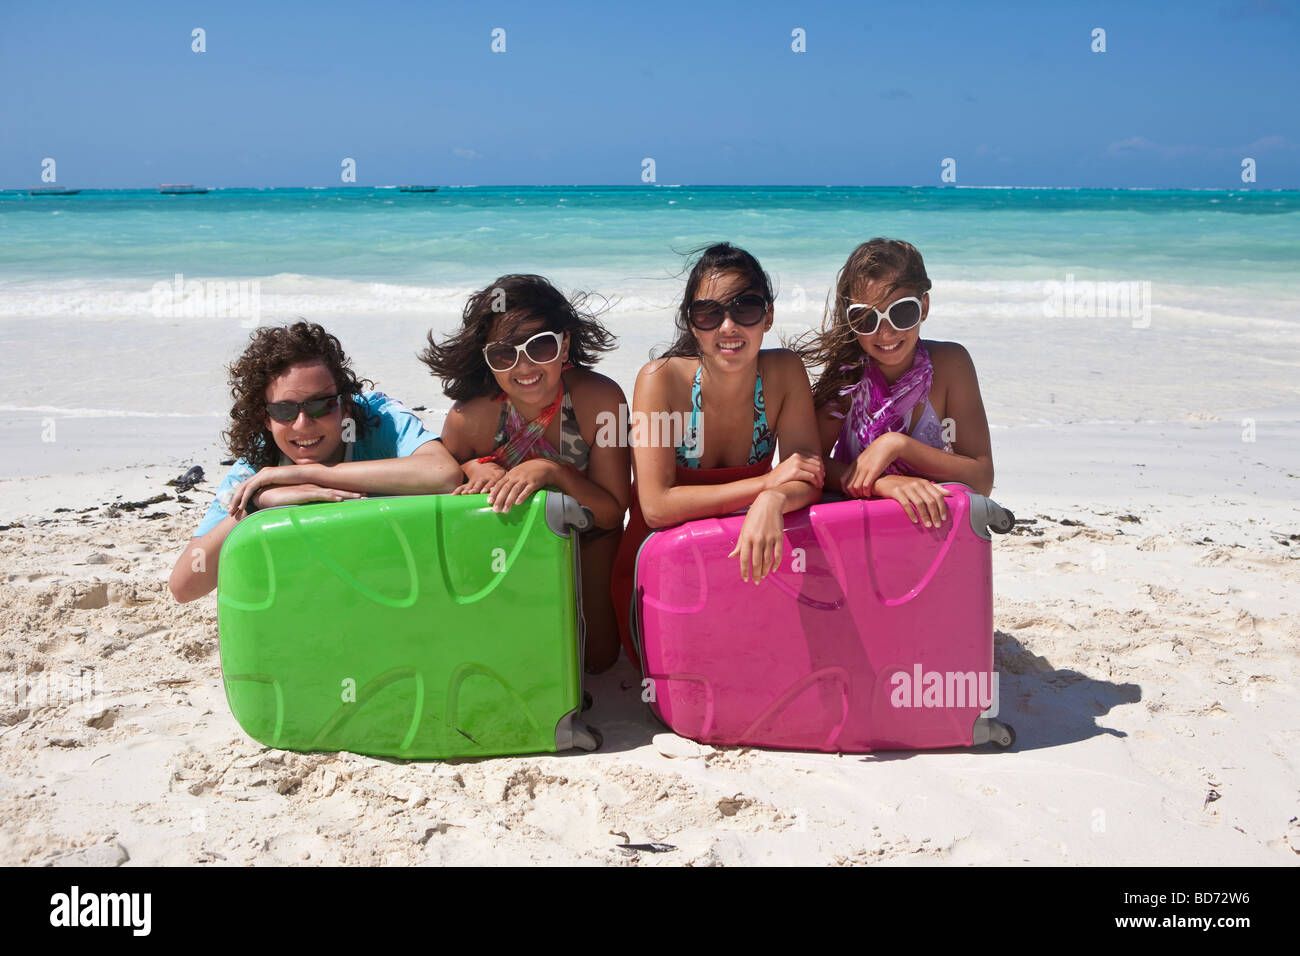 Four children sit behind their suitcases on the beach - Stock Image